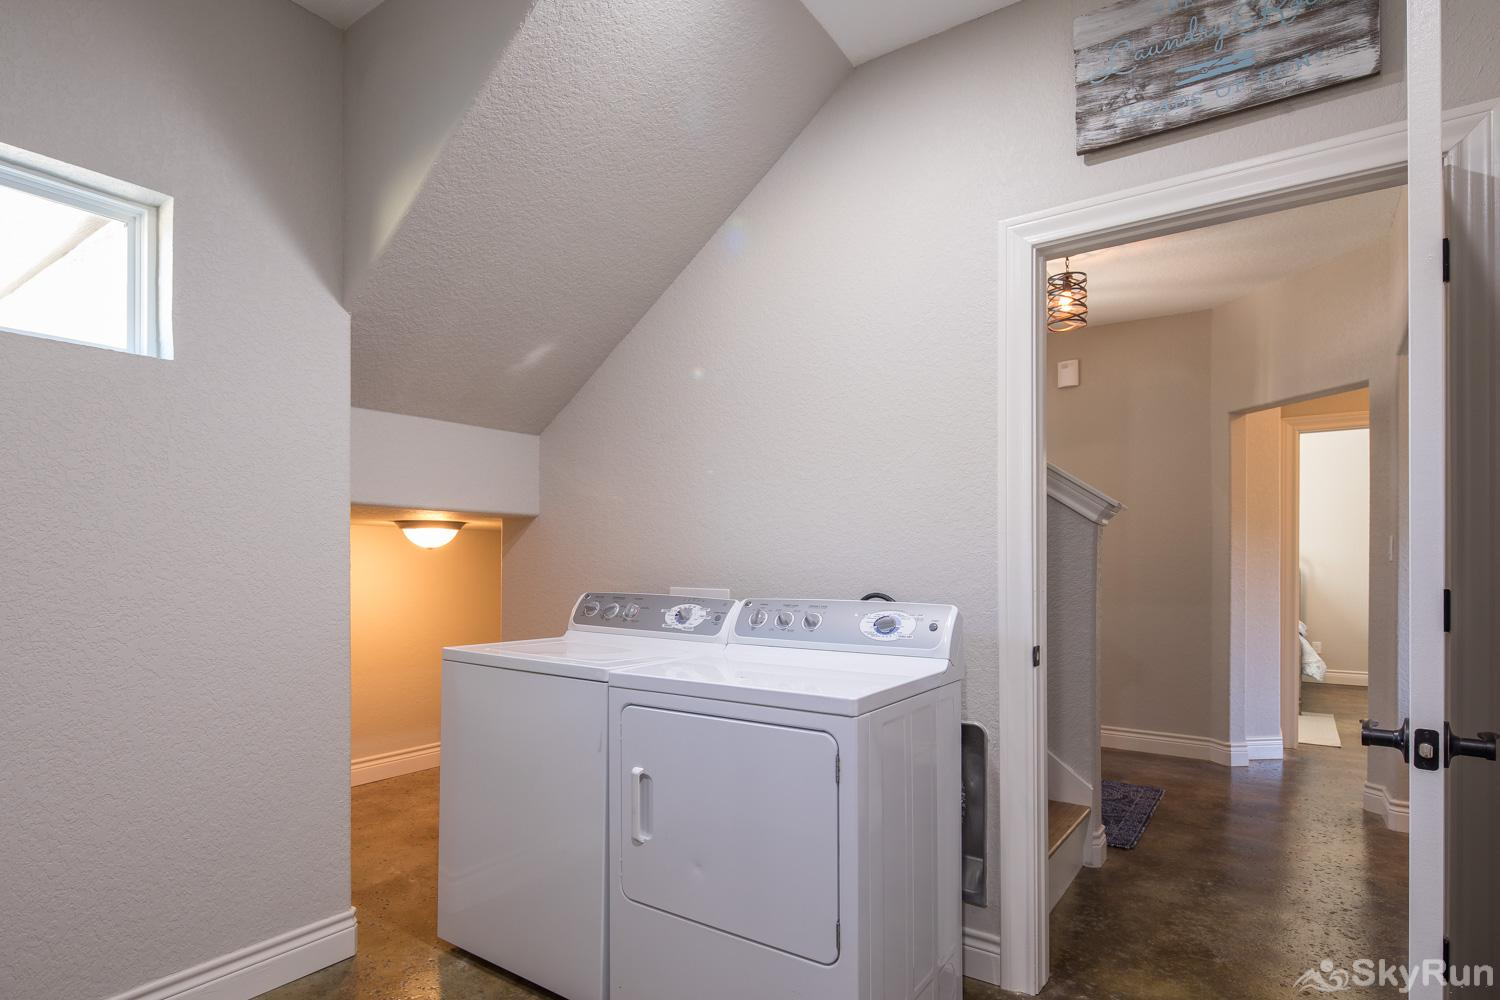 LAKESIDE LEDGE Washer and Dryer Available for Guest Use